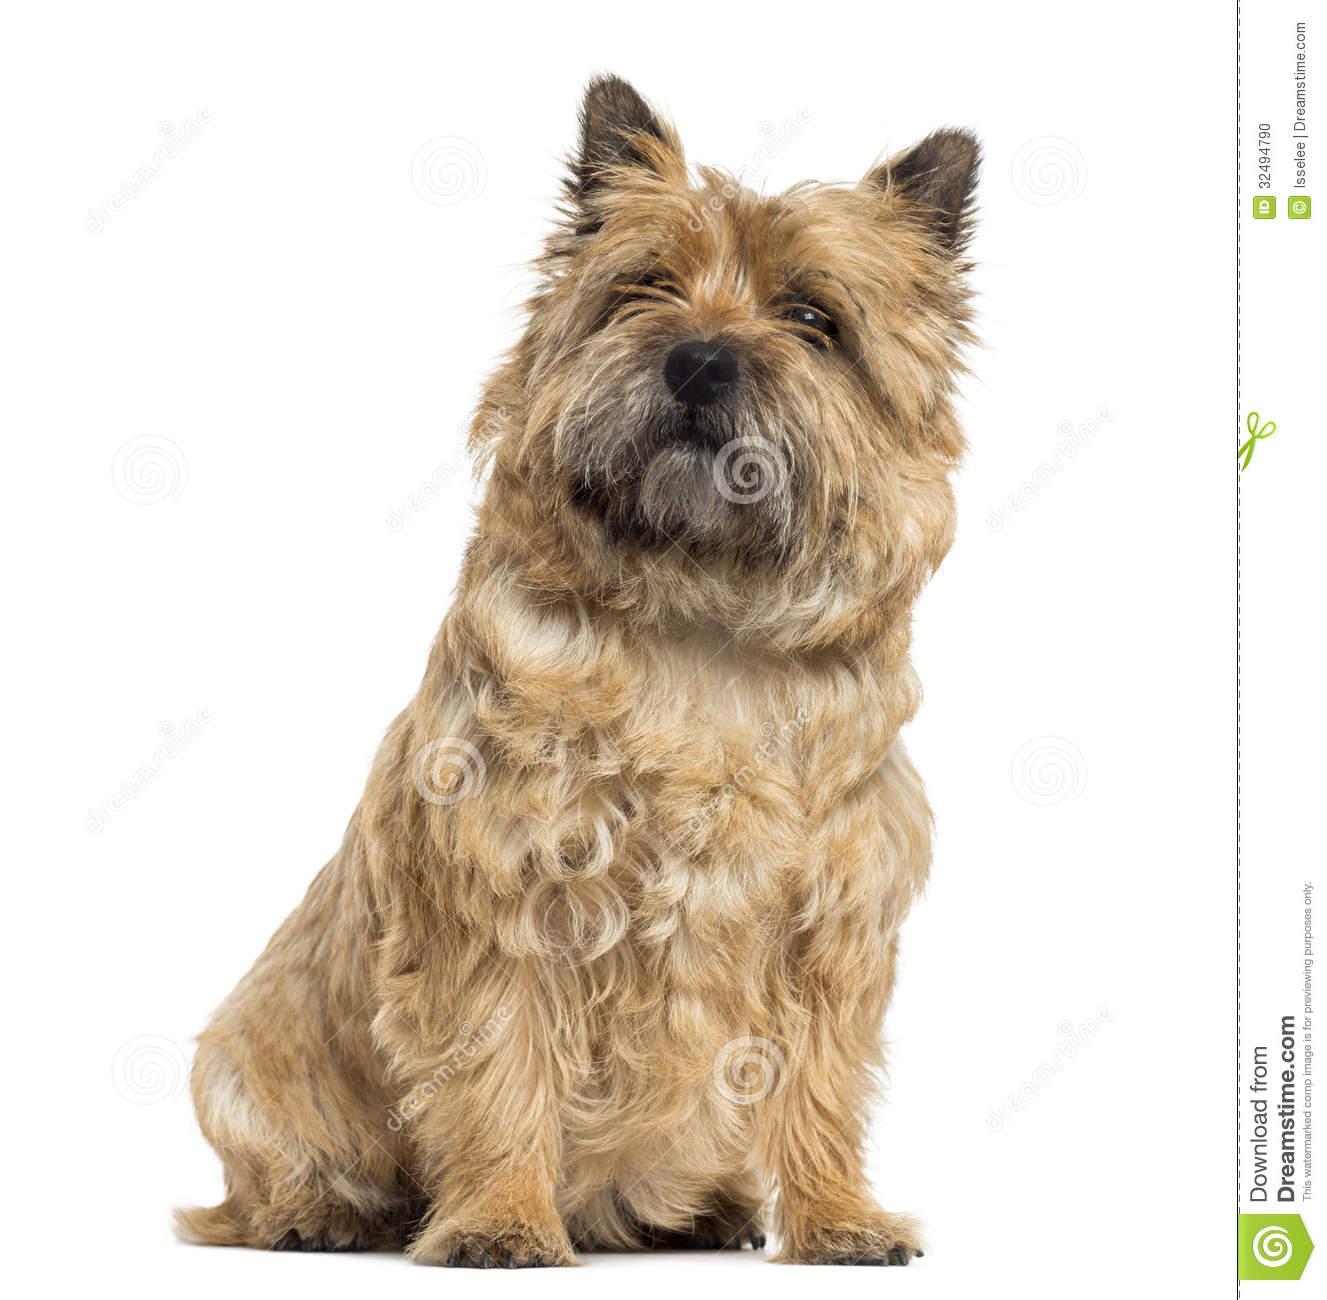 Cairn Terrier Royalty Free Stock Image.